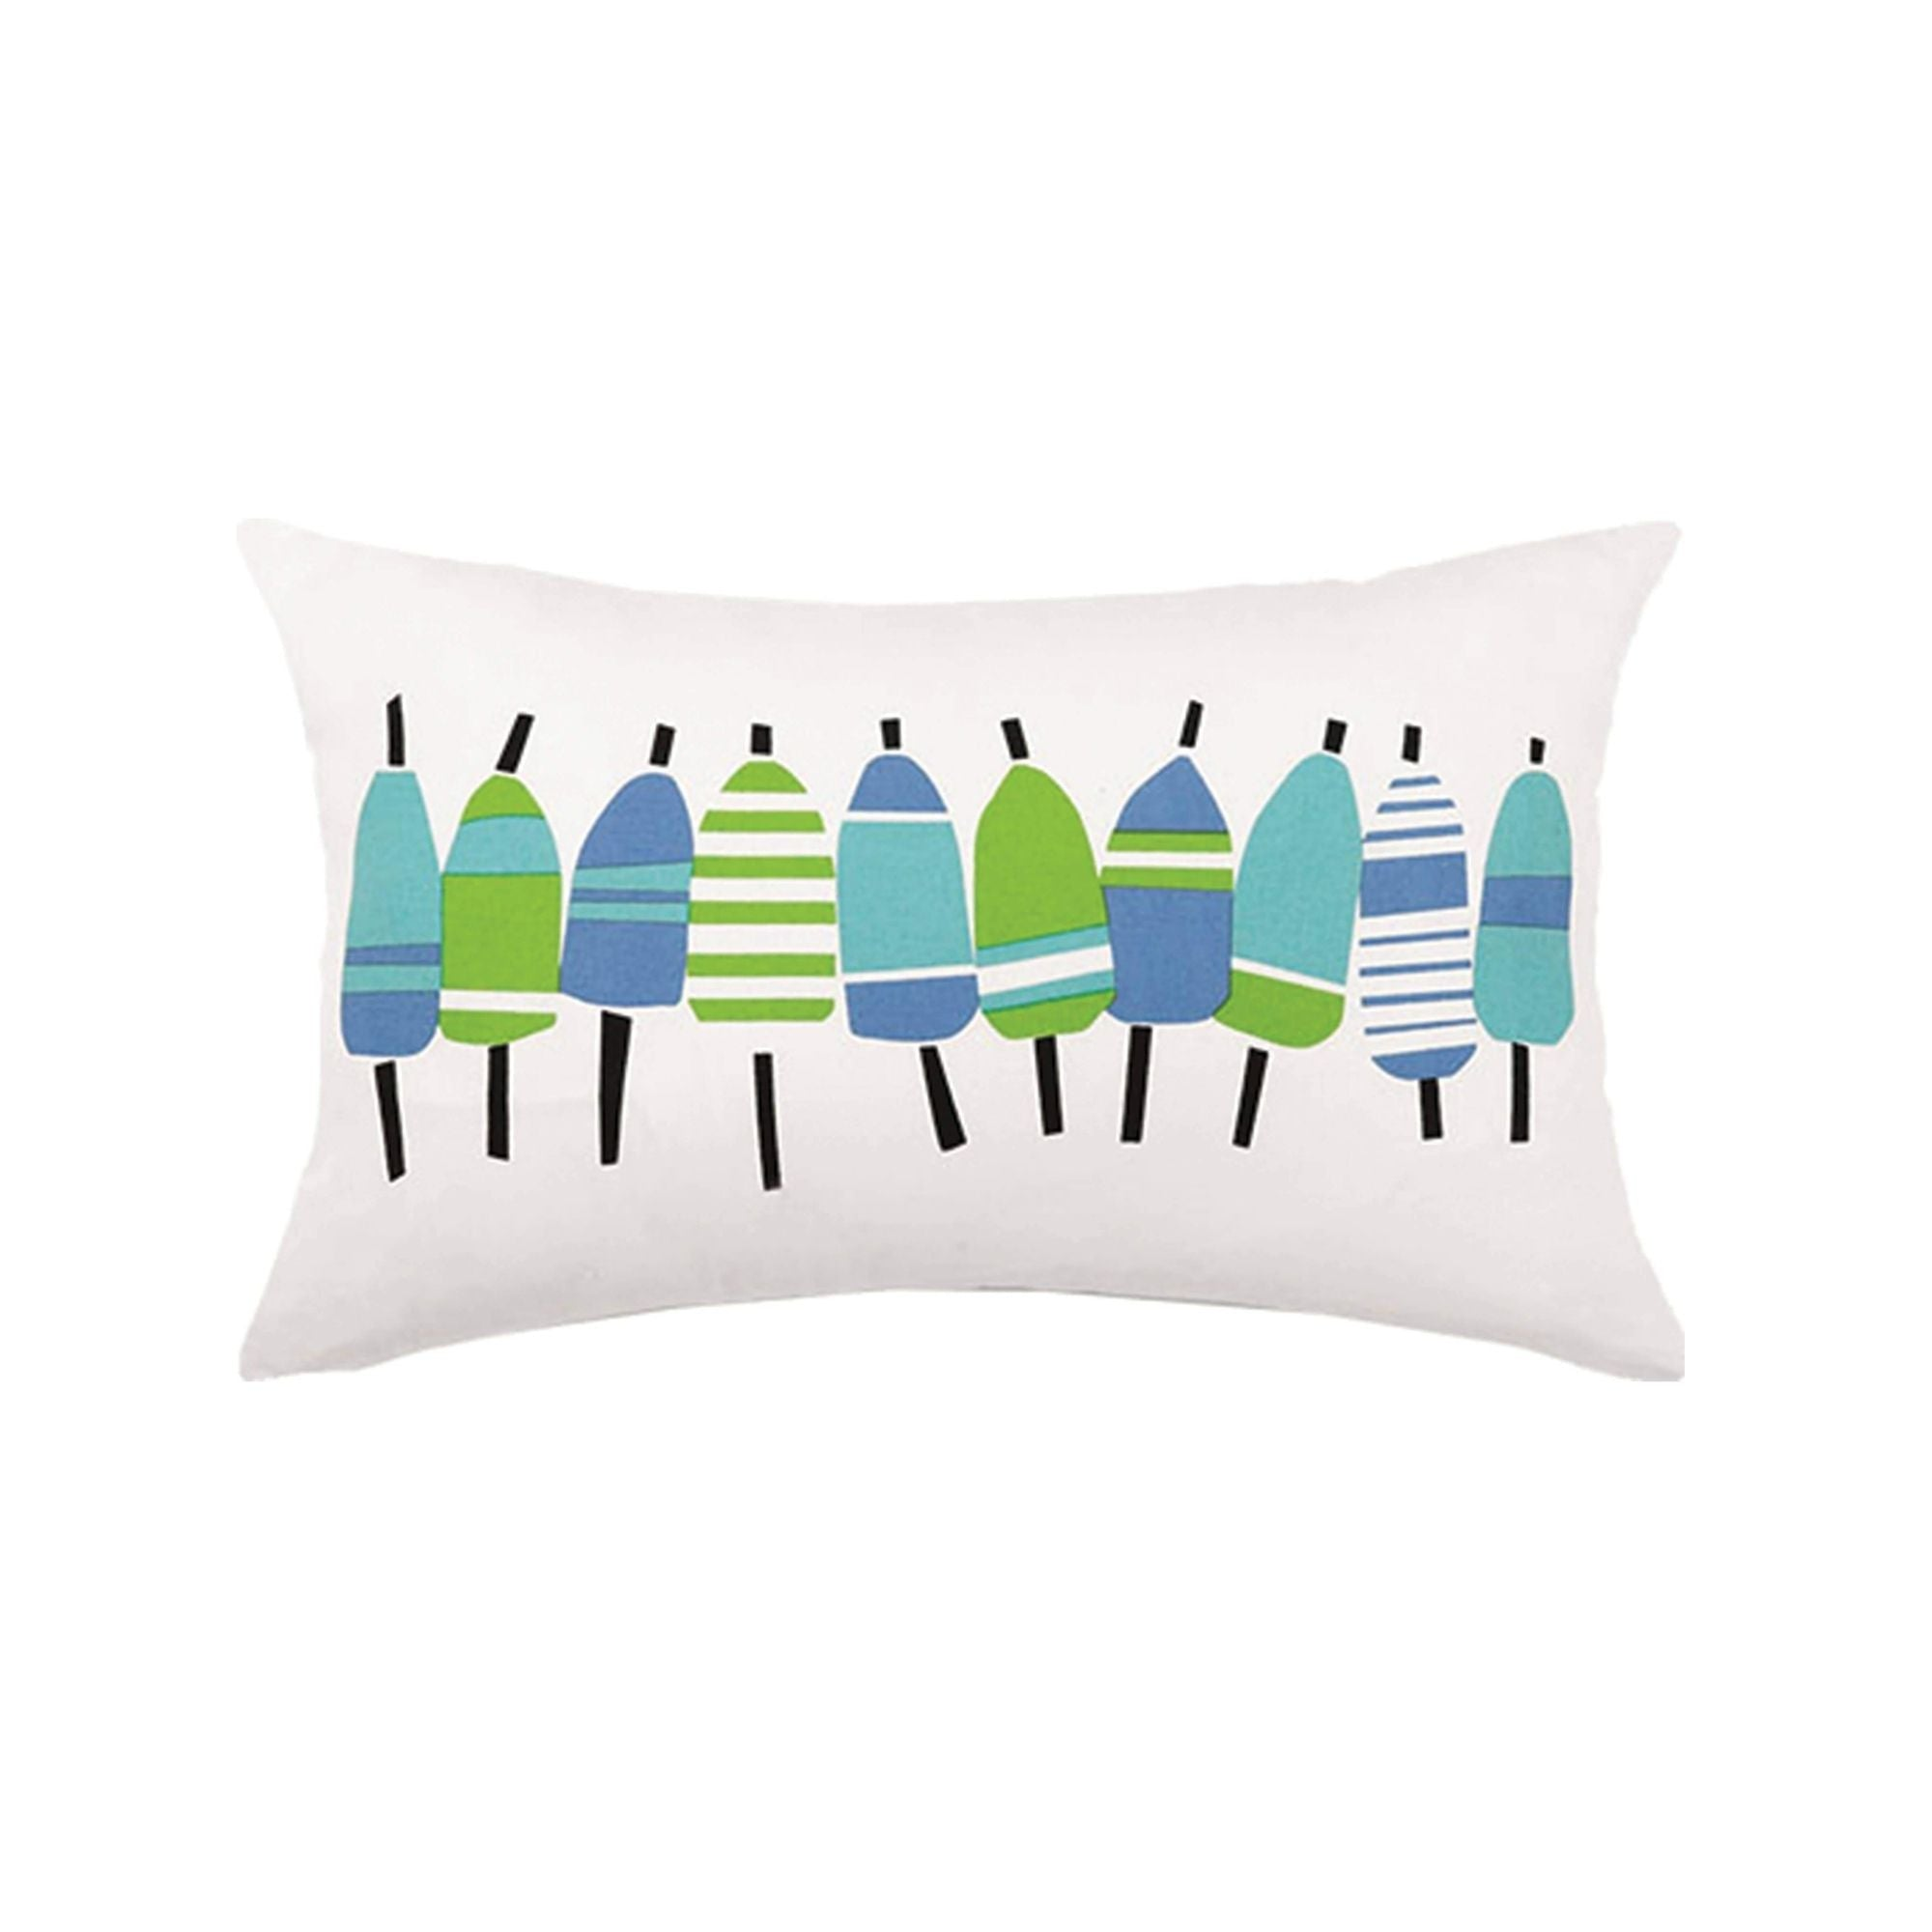 Buoys Printed Pillow Blue